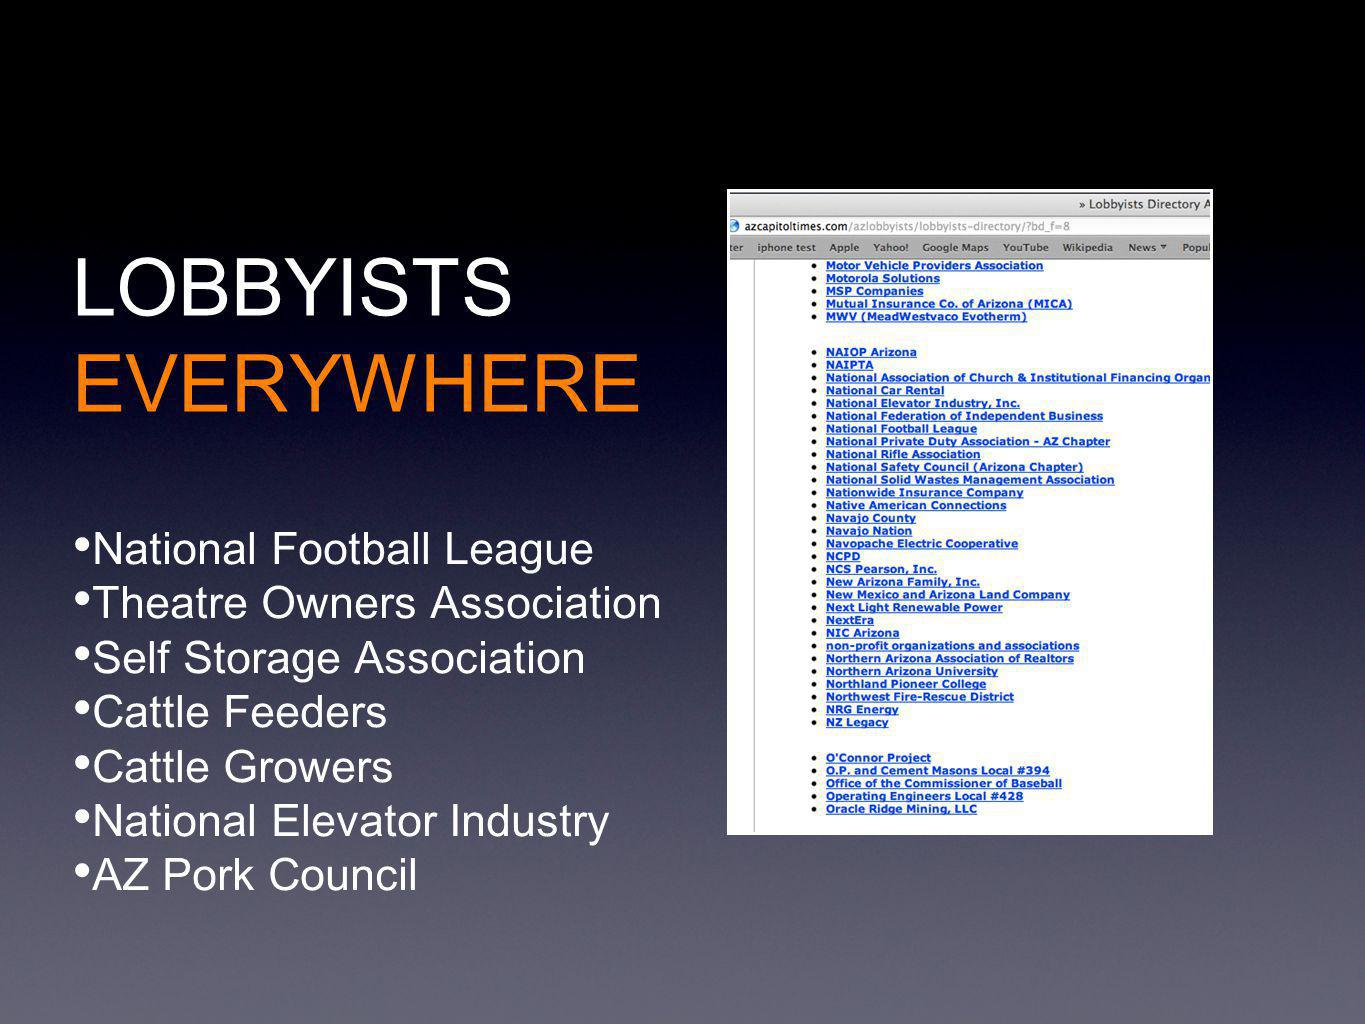 LOBBYISTS EVERYWHERE National Football League Theatre Owners Association Self Storage Association Cattle Feeders Cattle Growers National Elevator Industry AZ Pork Council